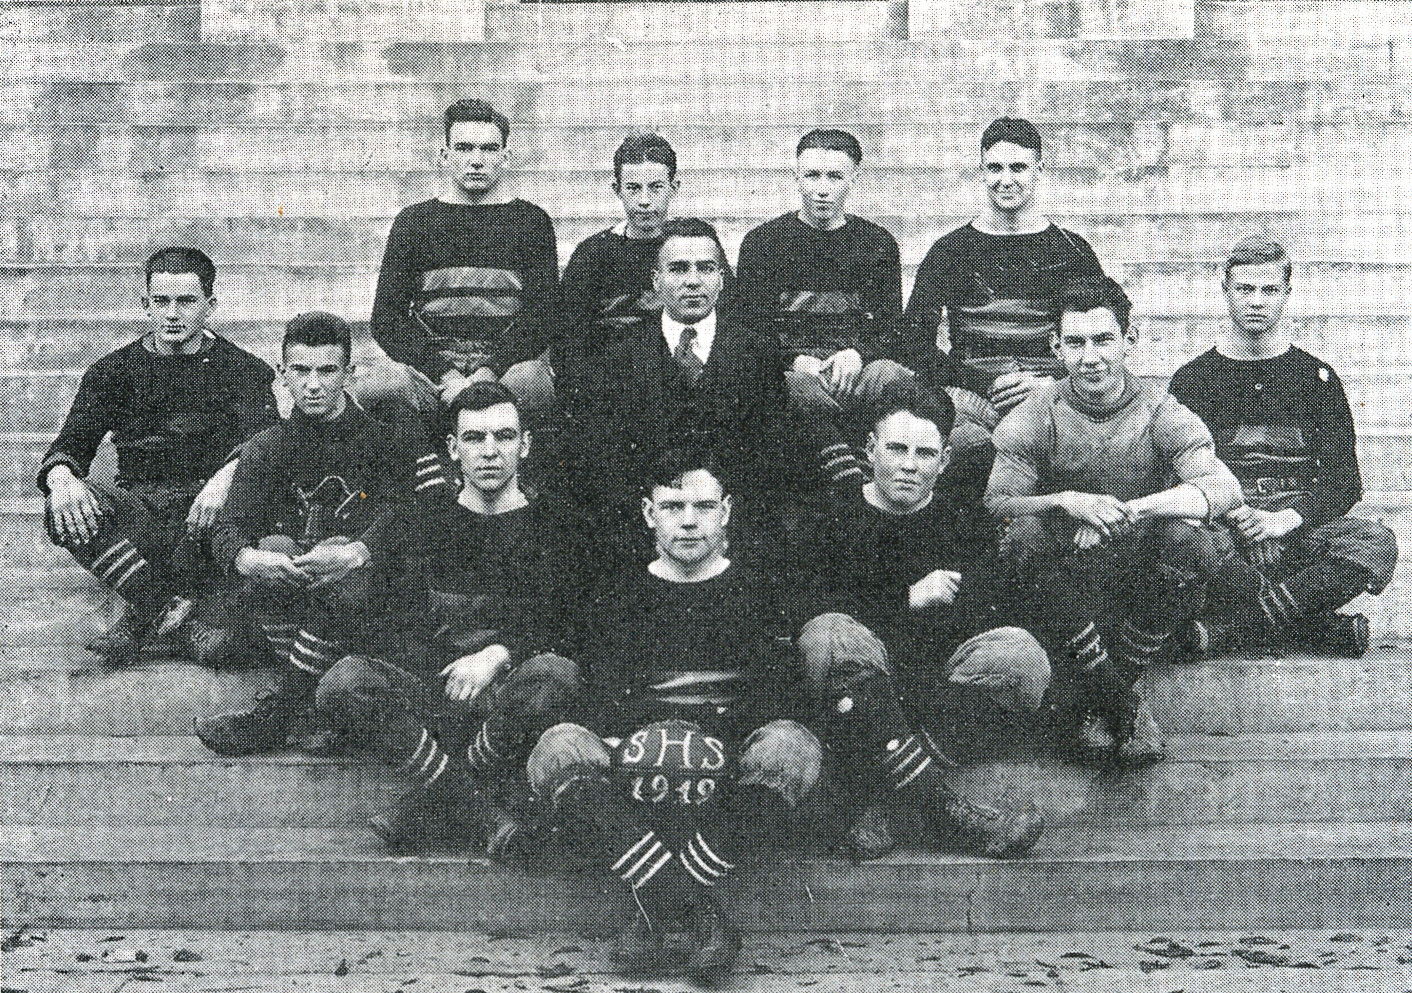 "The ""regular"" football team is pictured in the 1920 Sumter High School yearbook. Top row: Harold DeLorme (rt. half-back), George Wray (l. half-back), Clinton Wheeler (full back) and Julius Pitts (quarterback). Middle row: Coach Dargan. Bottom row: Coit Kirven (rt. end); Hubert Osteen (rt. tackle); John Haynsworth (rt. guard); DuPre Rhame (captain, center); James Hatfield (L. guard); James Burms (l. tackle); Jack Wright (l. end)."